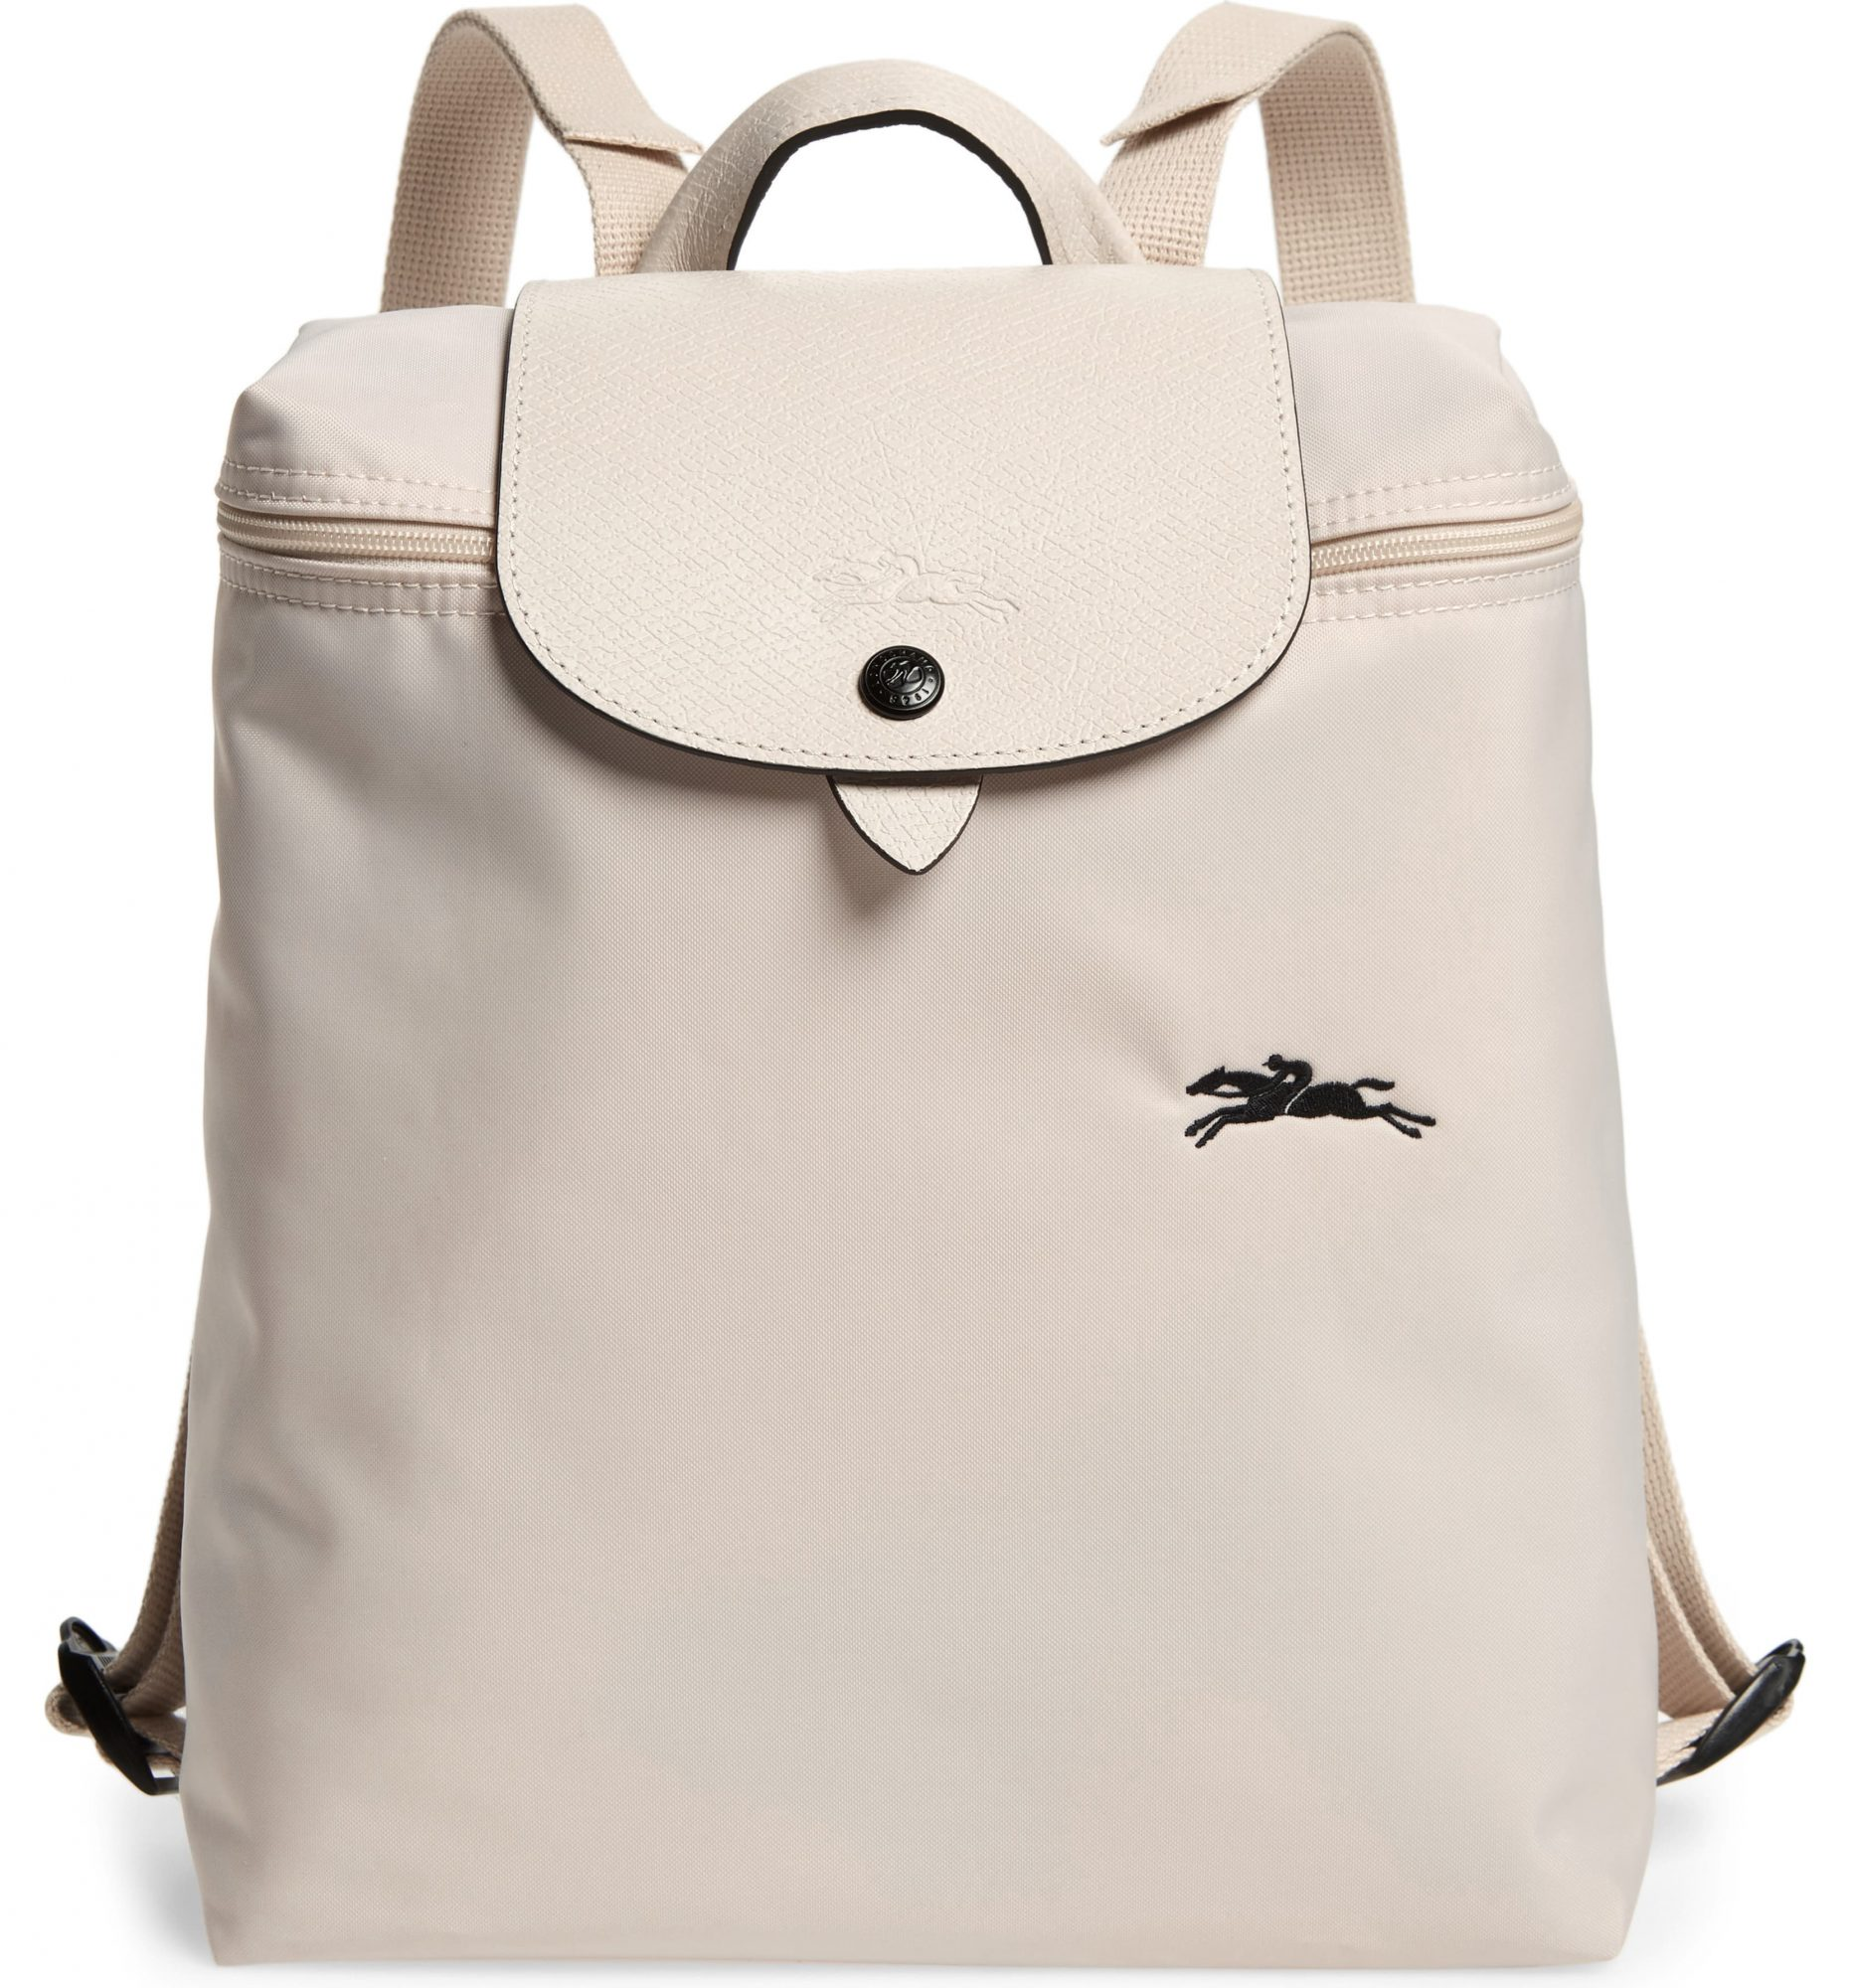 Longchamp Le Pliage Bags & Backpacks Are 40% Off at Nordstrom ...